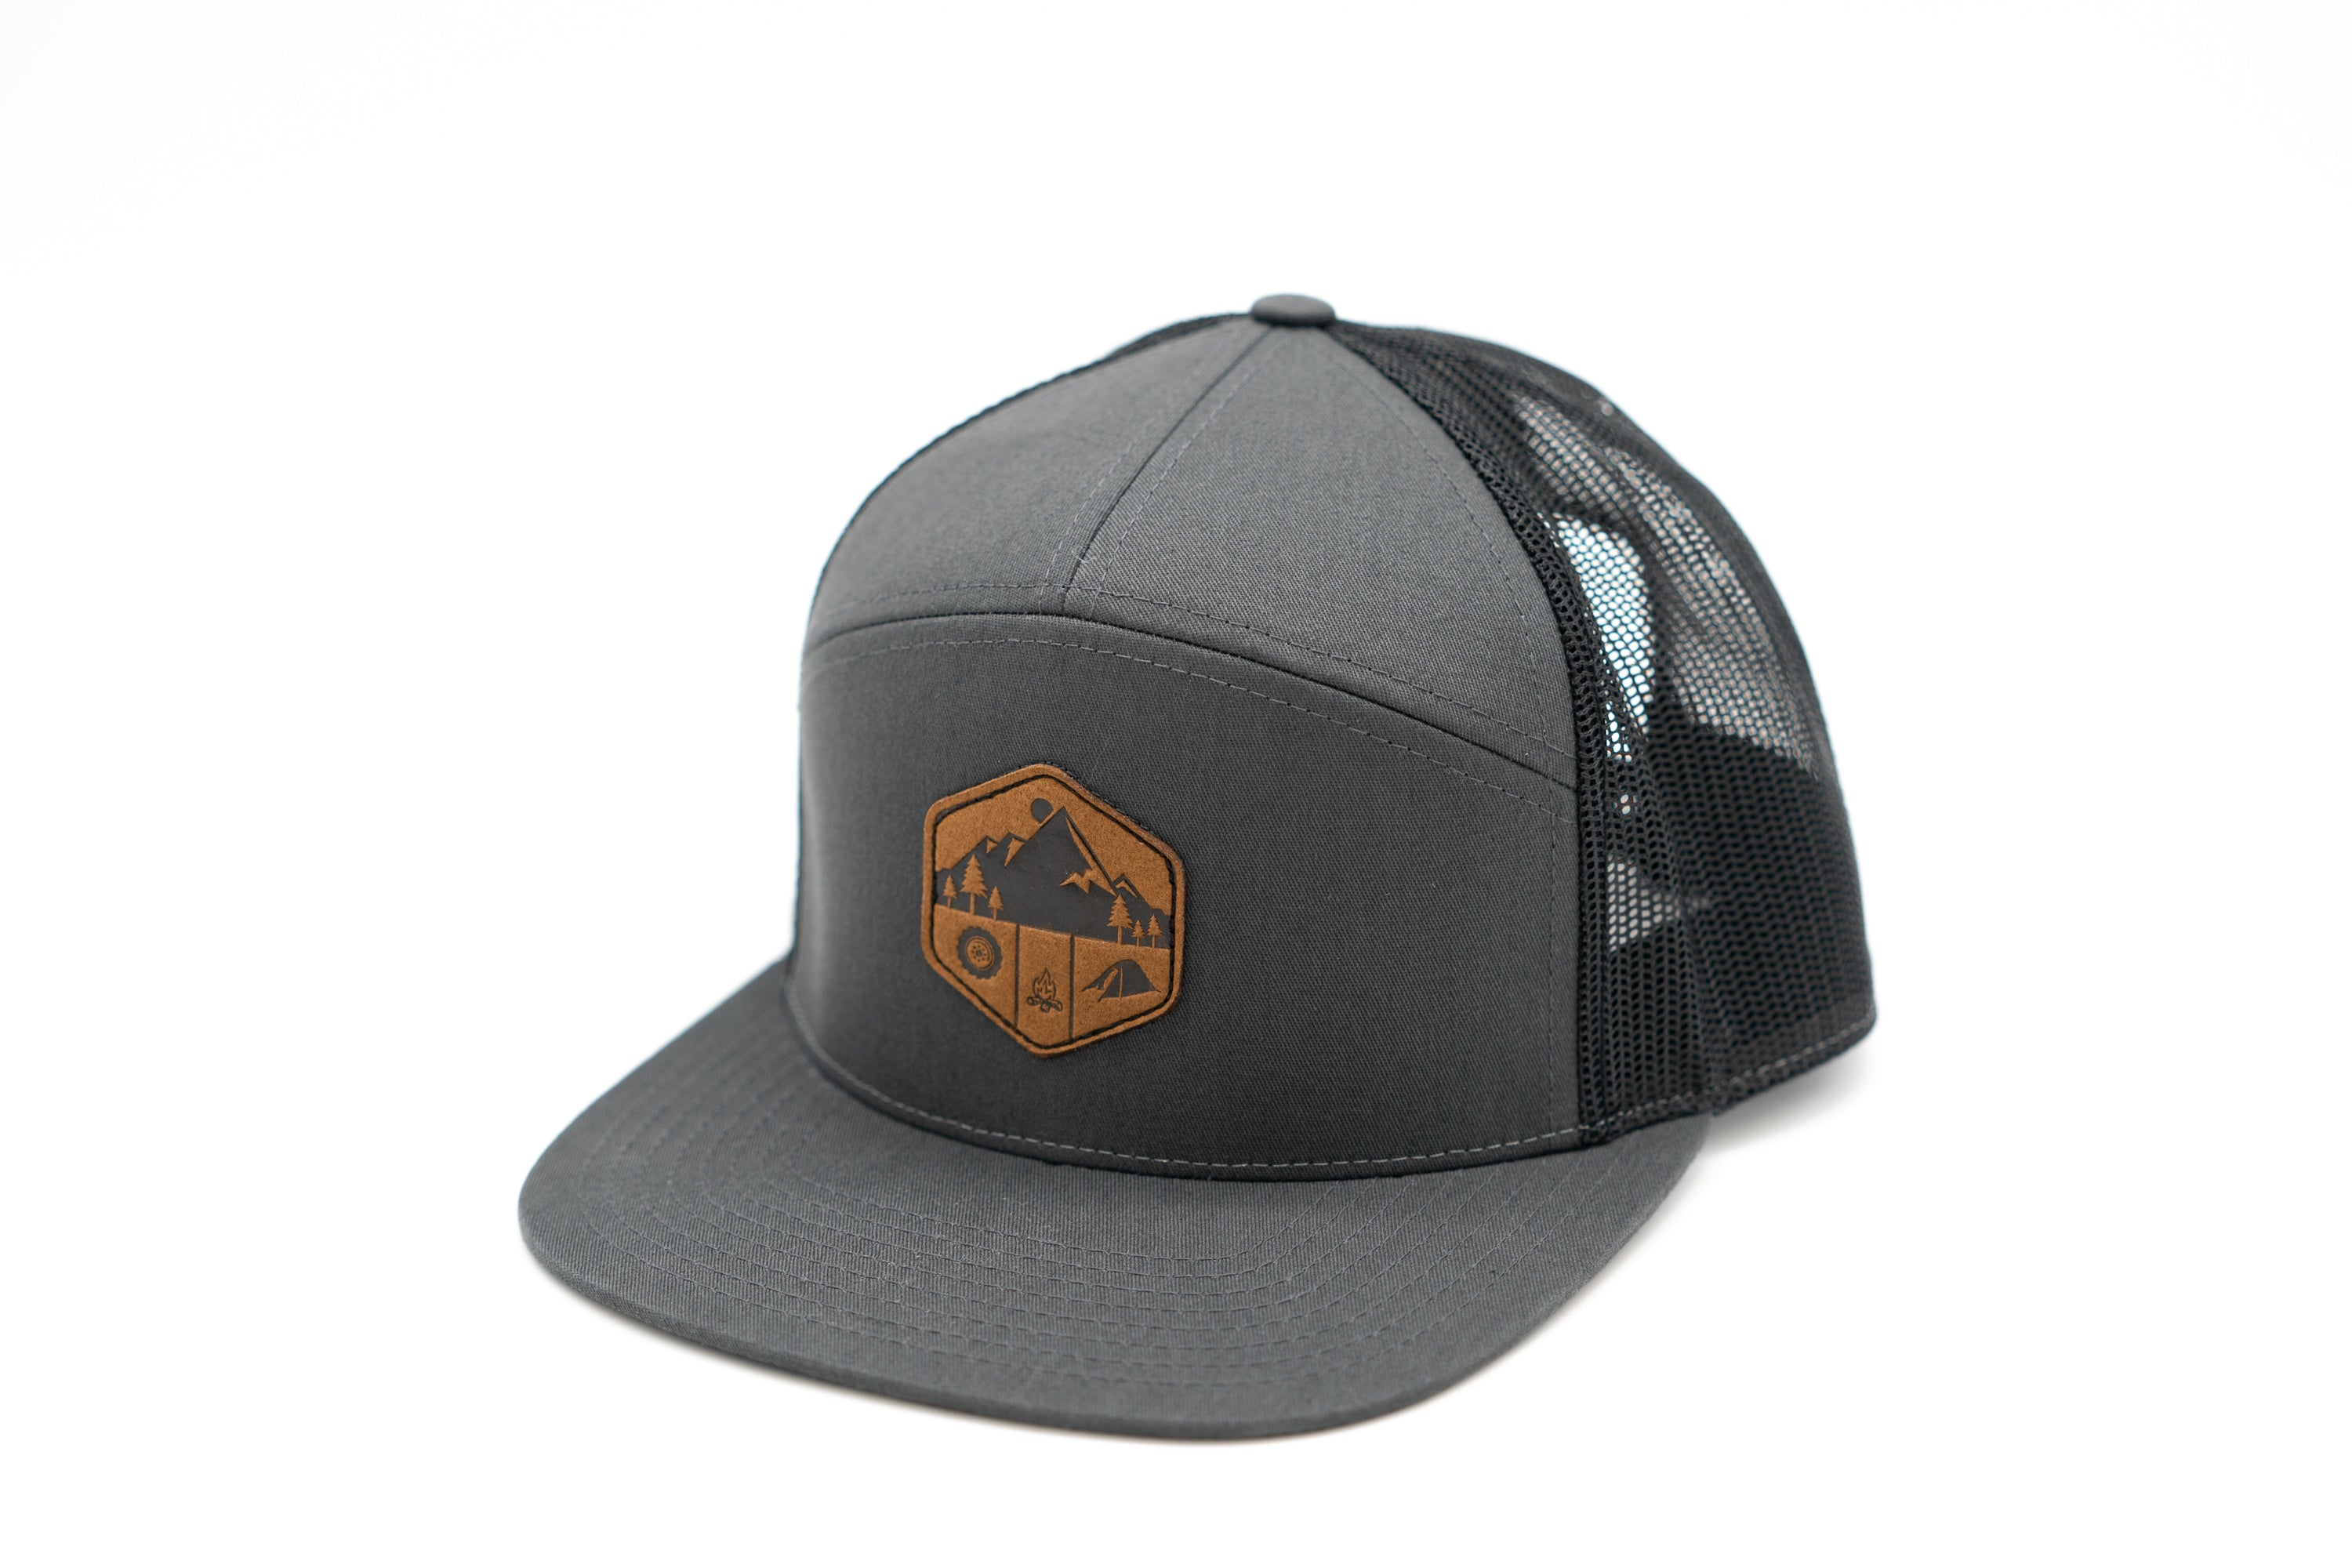 7 Panel Snapback Trucker Hat With Leather Camp Motif Patch - Charcoal Front and Black Mesh Back